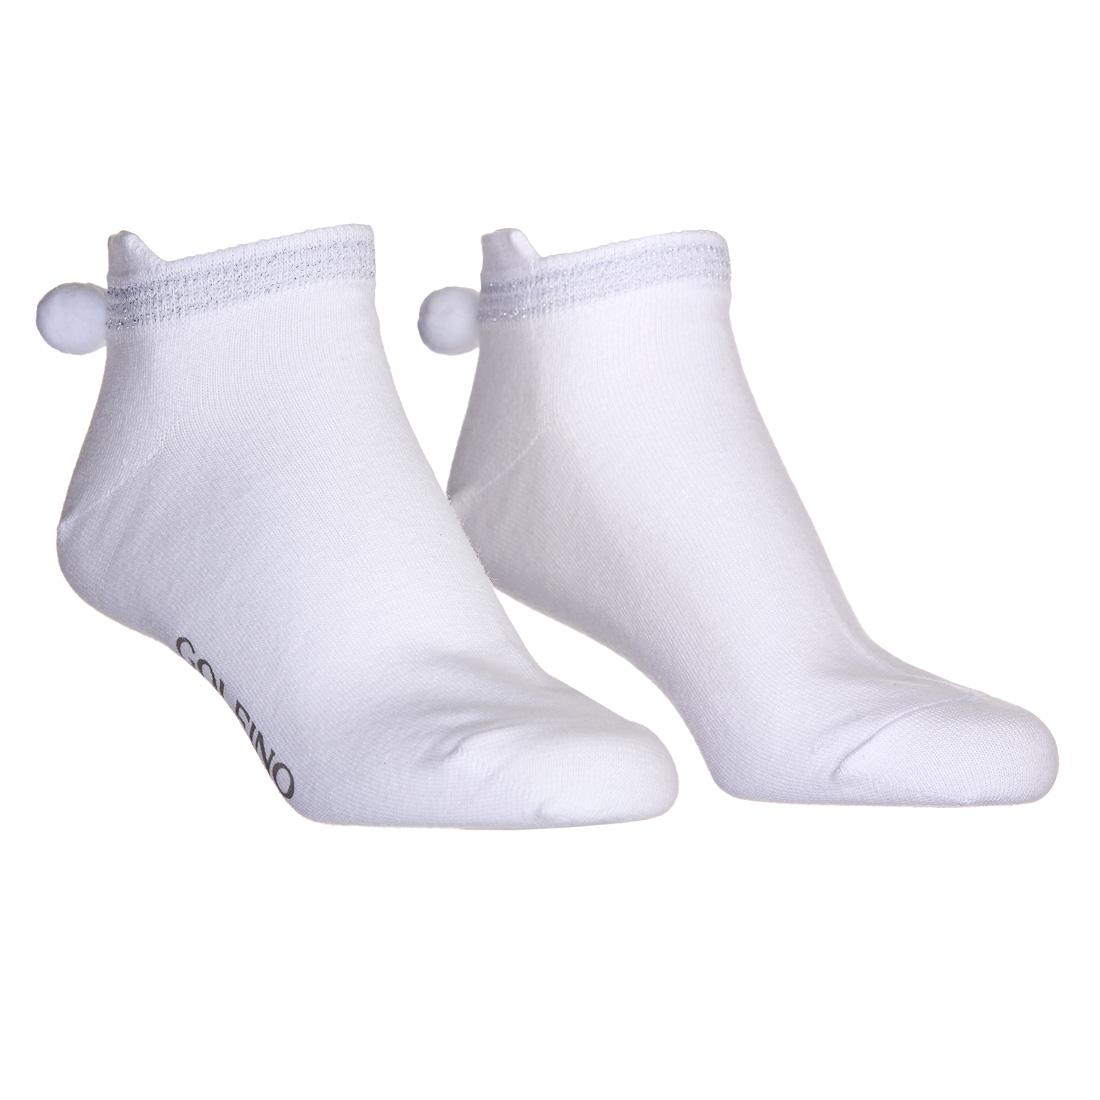 Ladies' functional golf socks